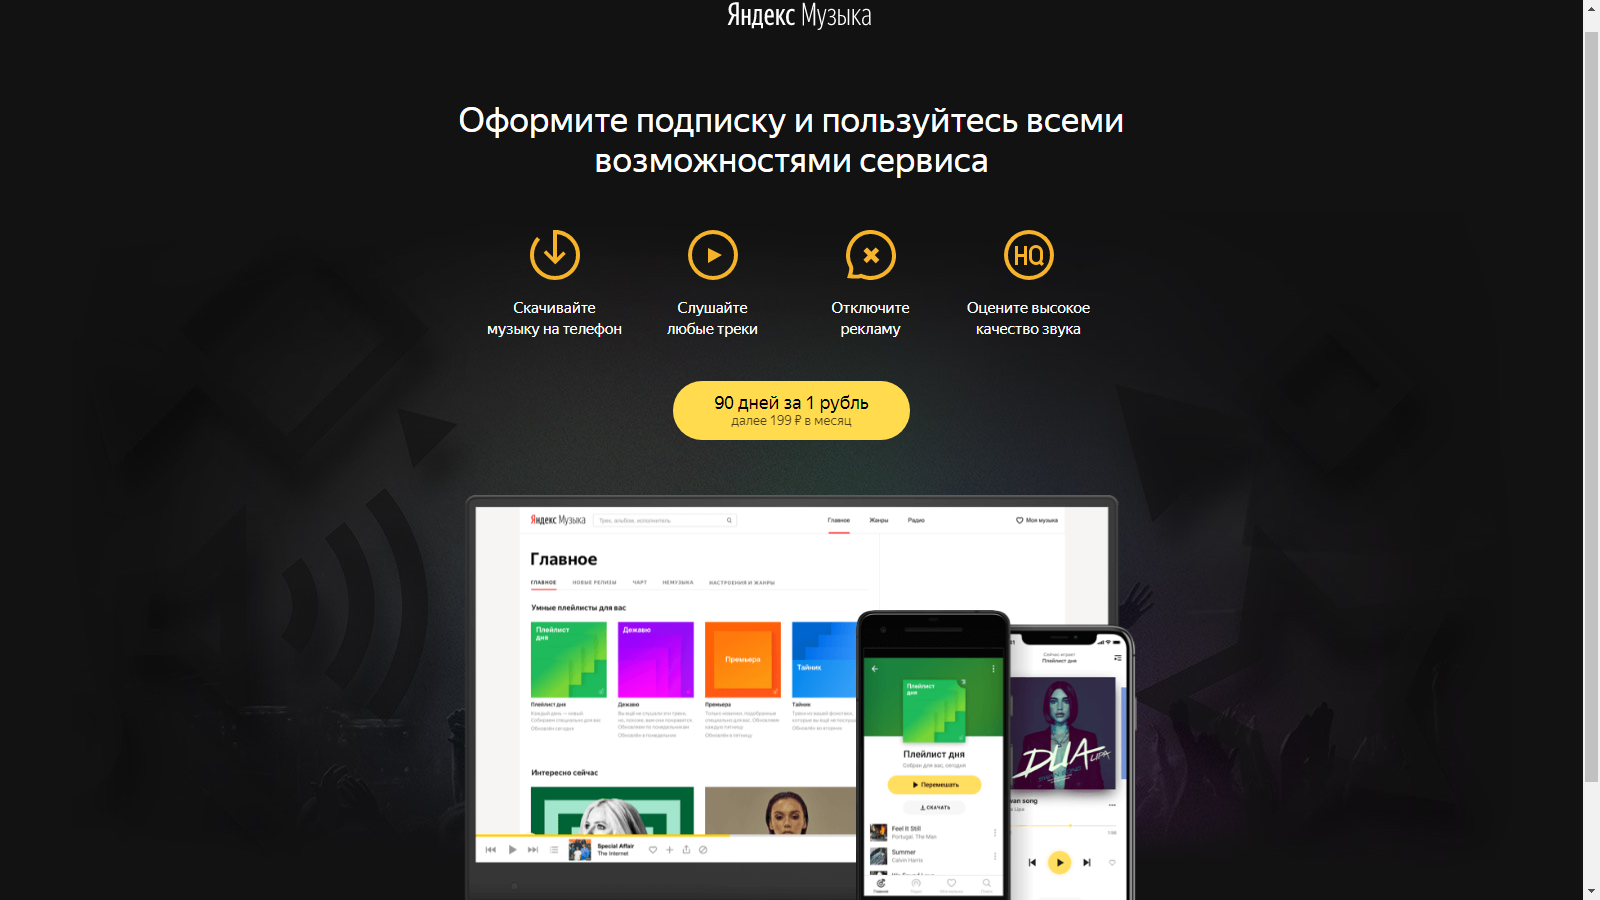 Yandex Music 90 days for 1 rubles